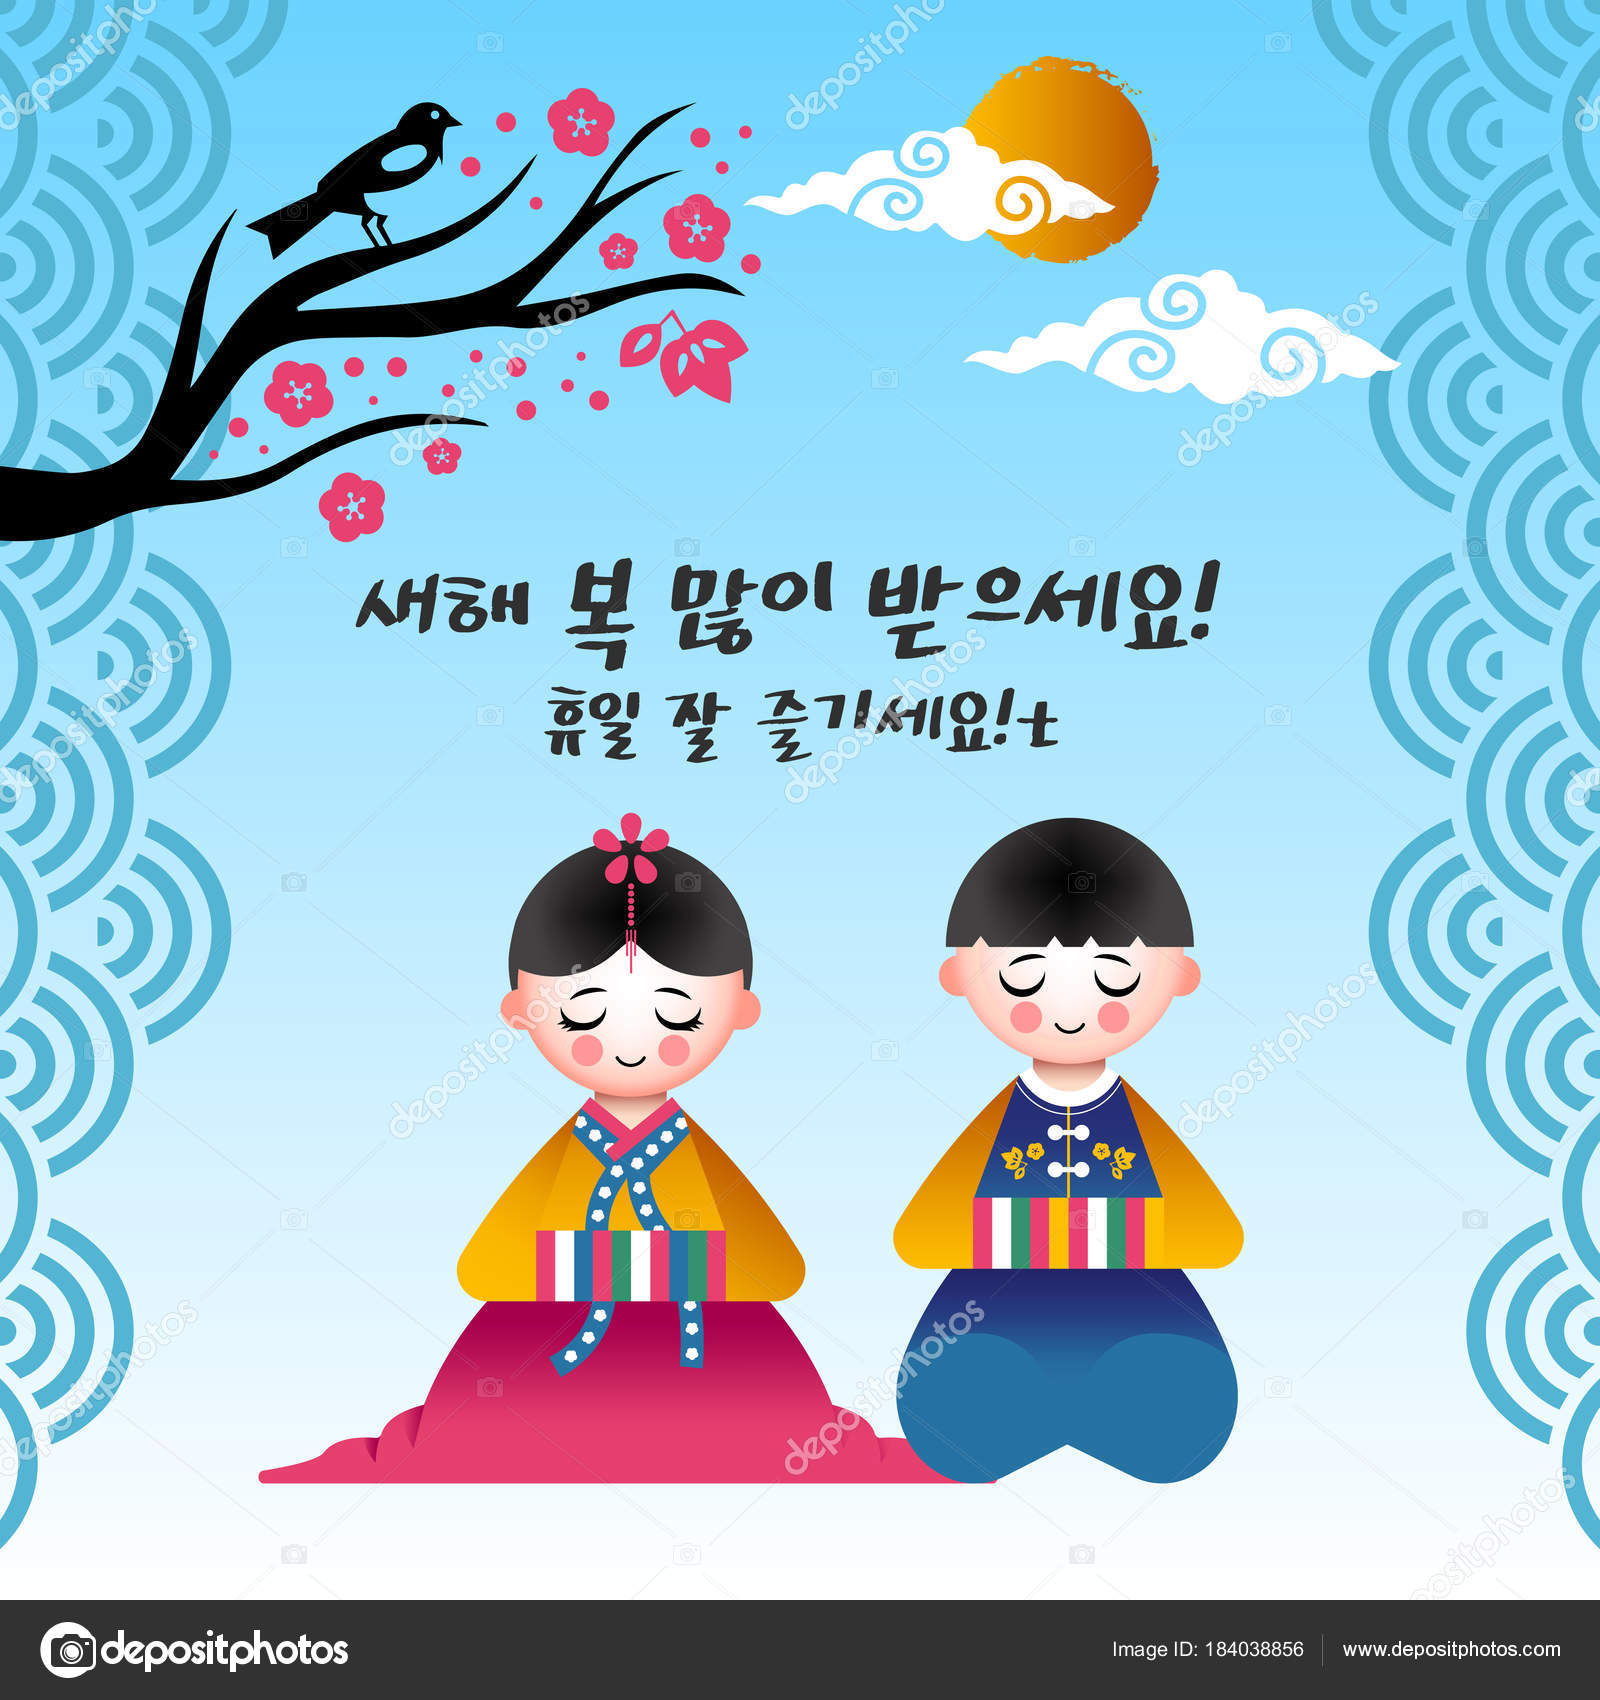 Happy korean new year 2018 kids greeting card stock vector happy korean new year 2018 greeting card with cute kids in traditional hanbok holiday clothing and calligraphy message for good fortune m4hsunfo